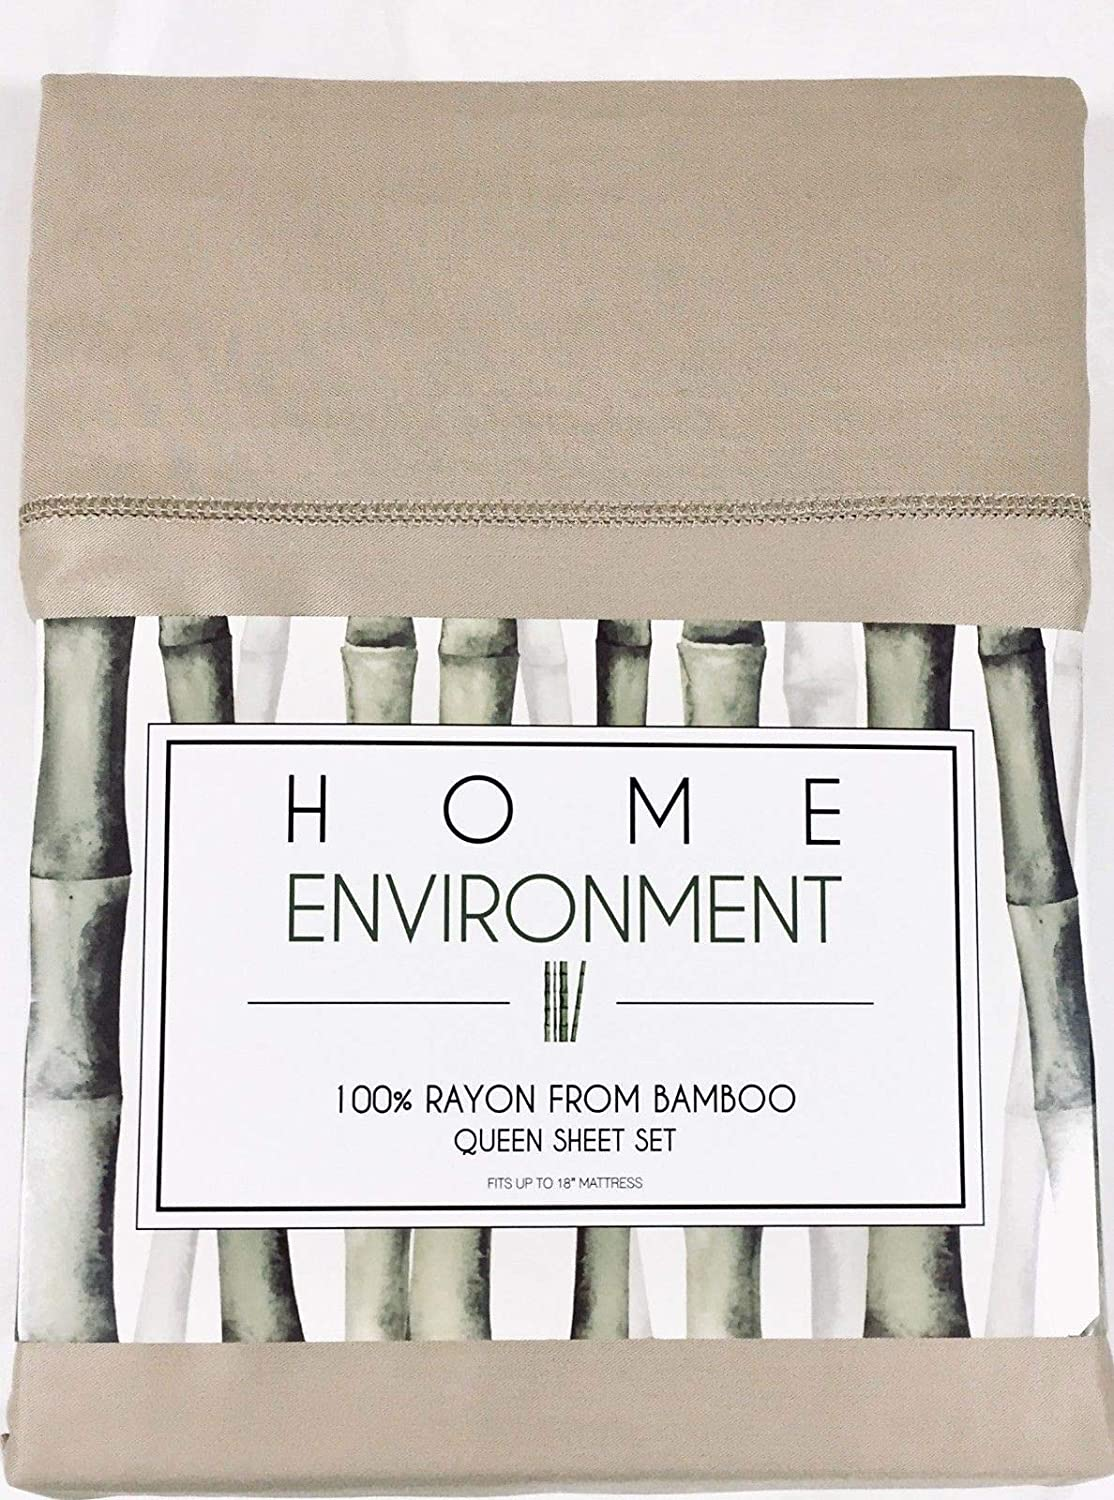 Home Environment Beige Queen Sheet Set 100% Rayon from Bamboo - Antibacterial Eco-Friendly